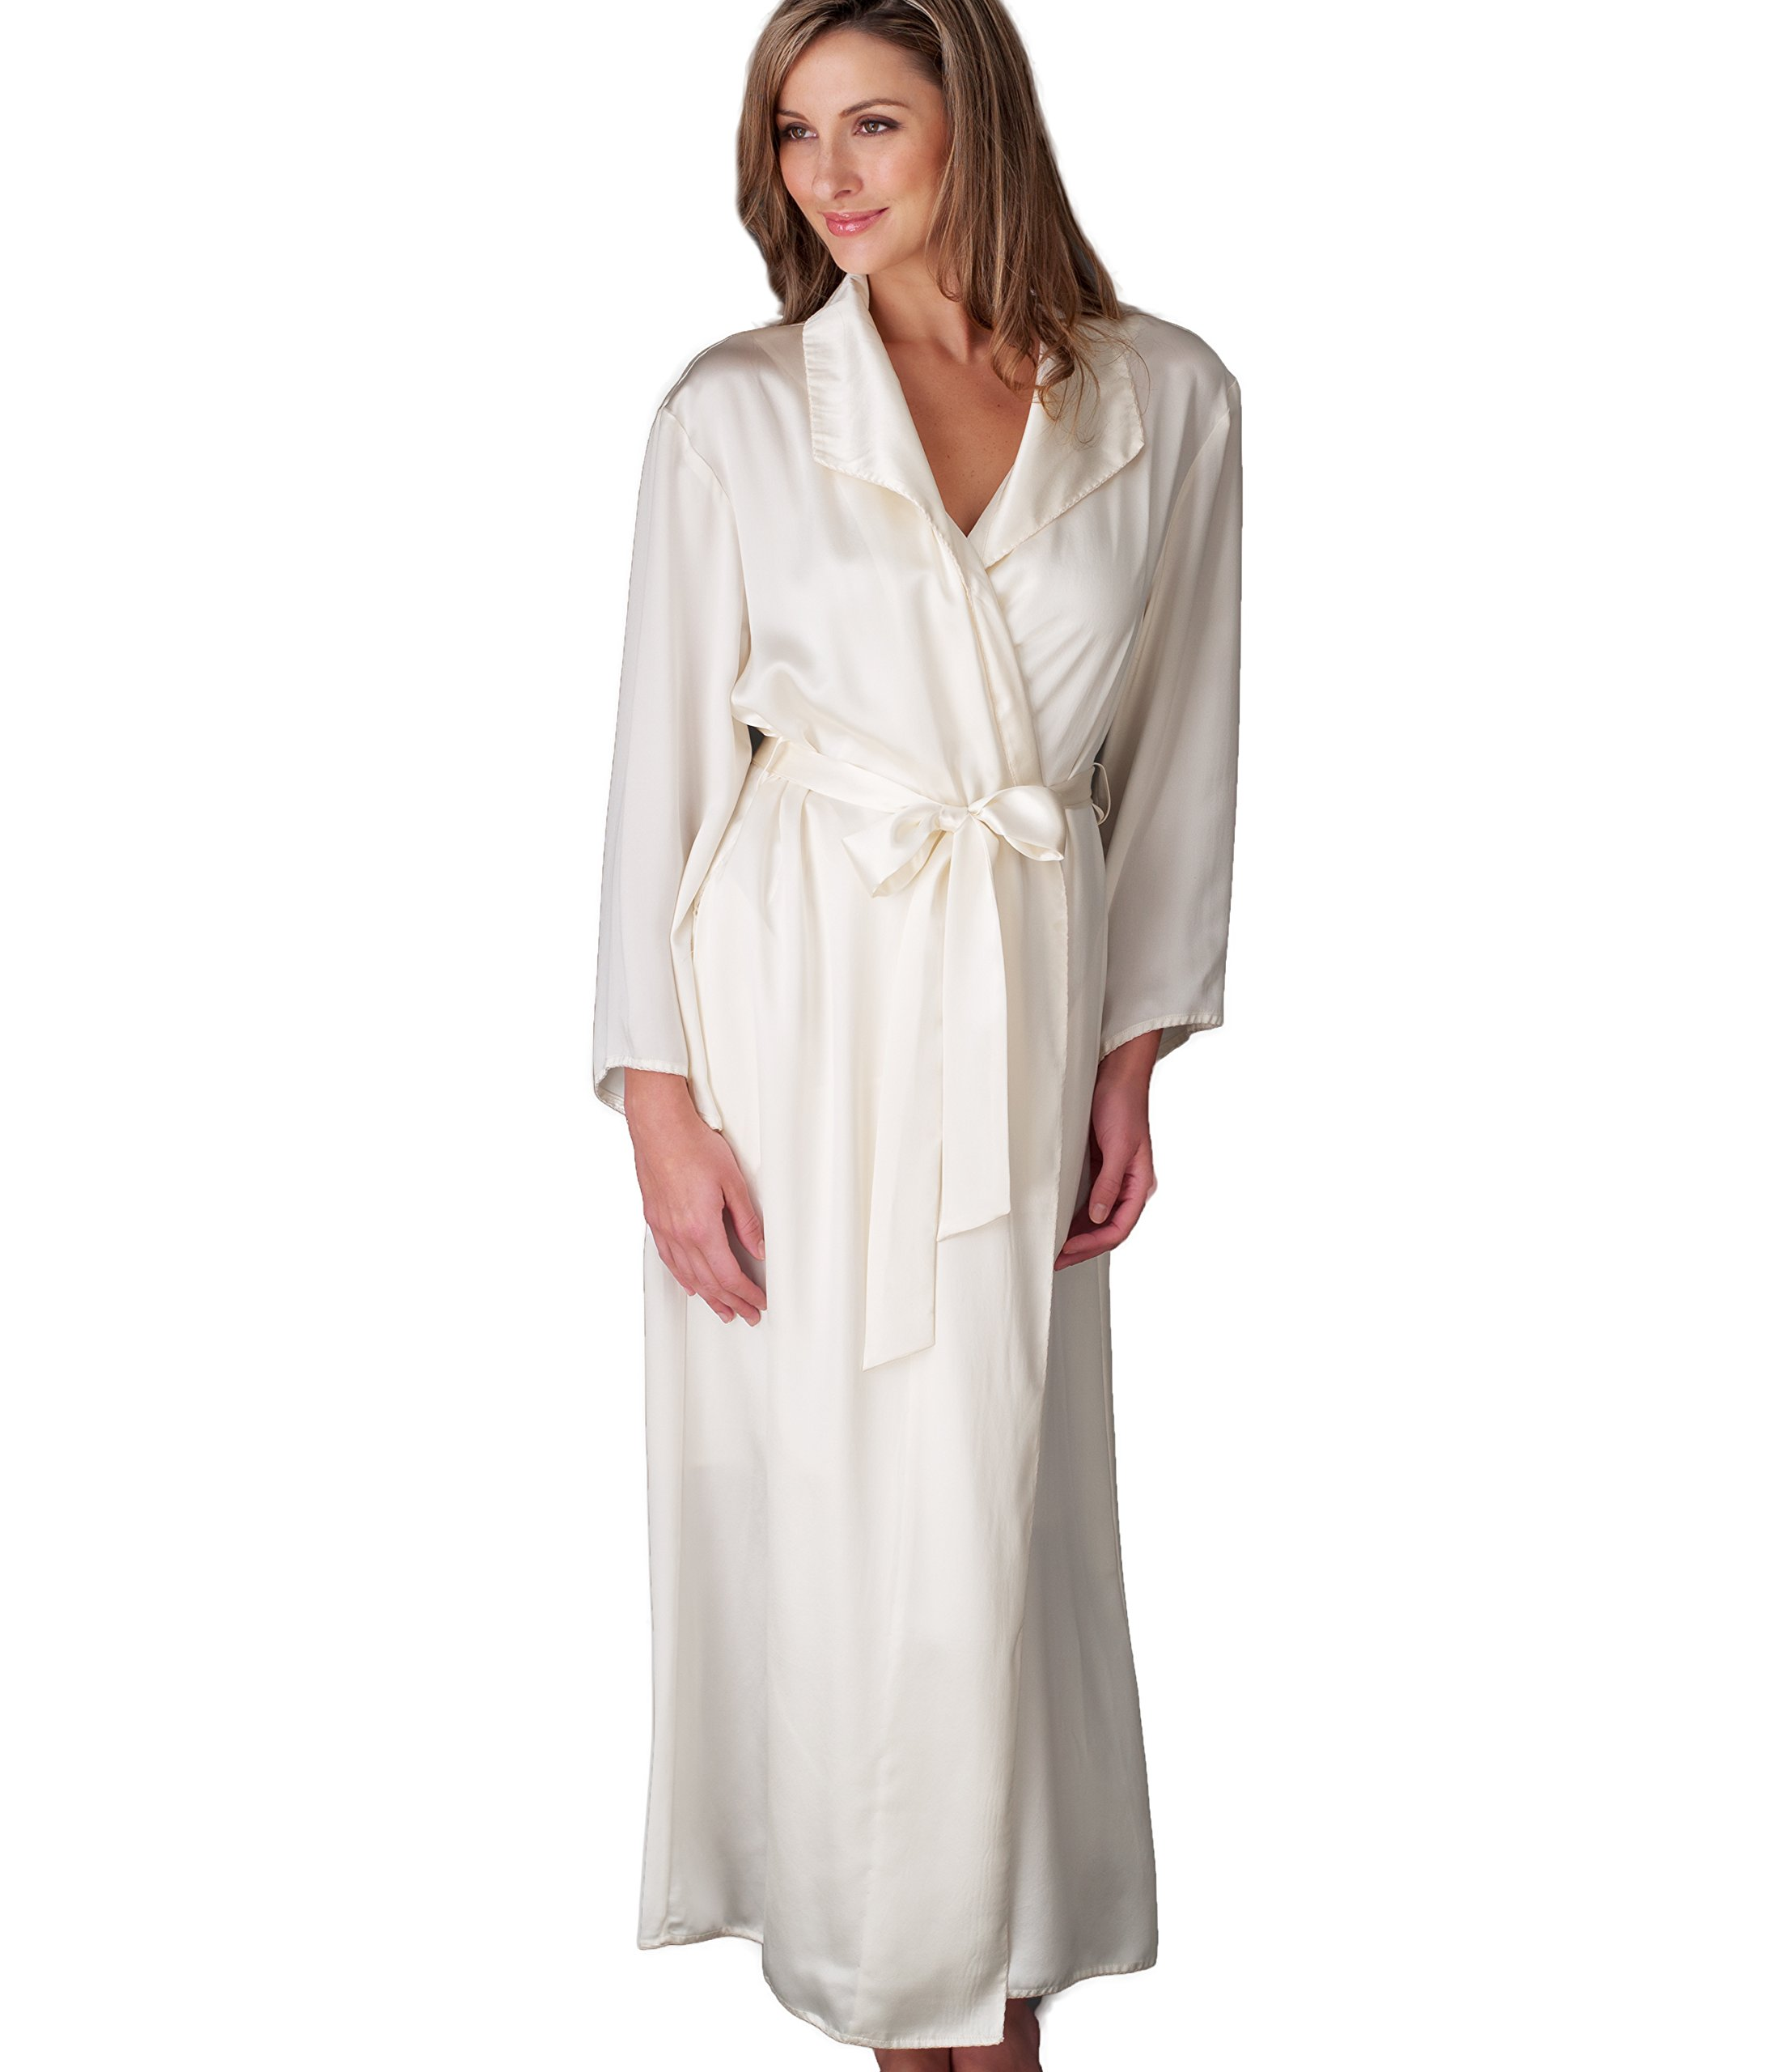 Julianna Rae Women's Evening Stroll 100% Silk Robe, Alabaster, M by Julianna Rae